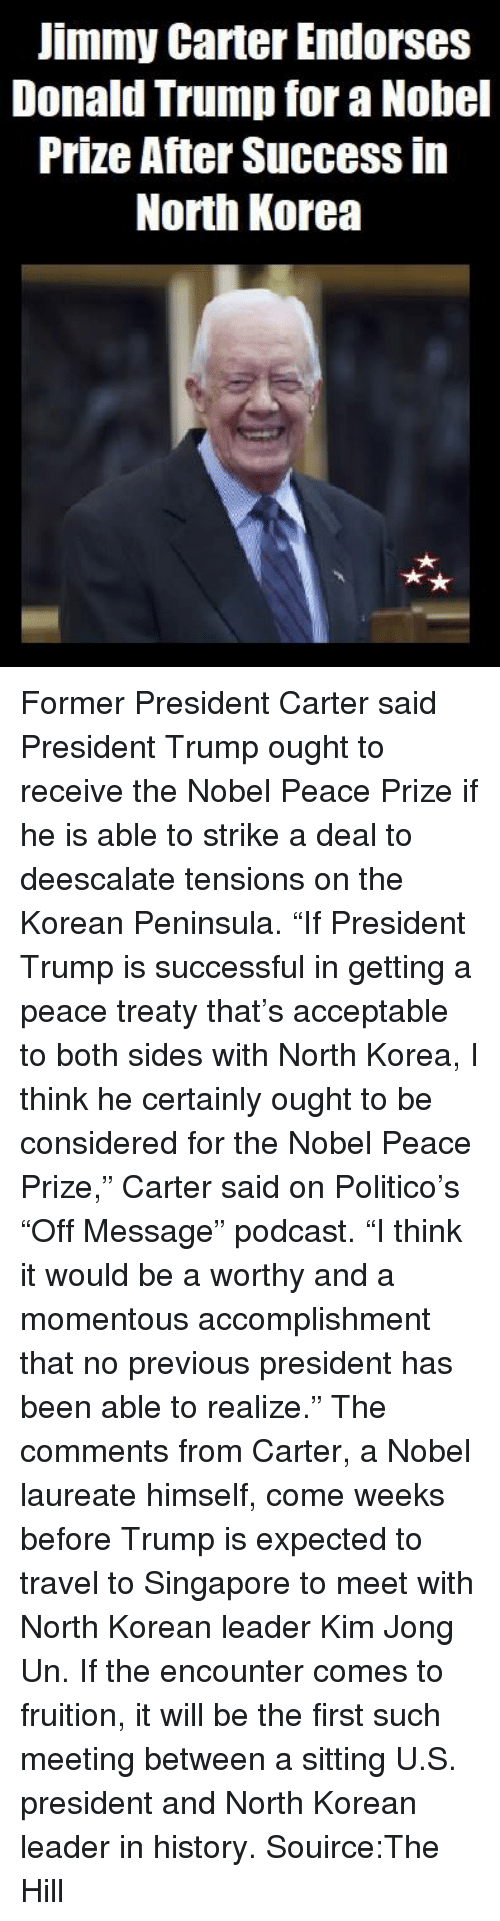 "Donald Trump, Jimmy Carter, and Kim Jong-Un: Jimmy Carter Endorses  Donald Trump for a Nobel  Prize After Success in  North Korea Former President Carter said President Trump ought to receive the Nobel Peace Prize if he is able to strike a deal to deescalate tensions on the Korean Peninsula.  ""If President Trump is successful in getting a peace treaty that's acceptable to both sides with North Korea, I think he certainly ought to be considered for the Nobel Peace Prize,"" Carter said on Politico's ""Off Message"" podcast.  ""I think it would be a worthy and a momentous accomplishment that no previous president has been able to realize.""  The comments from Carter, a Nobel laureate himself, come weeks before Trump is expected to travel to Singapore to meet with North Korean leader Kim Jong Un.  If the encounter comes to fruition, it will be the first such meeting between a sitting U.S. president and North Korean leader in history.  Souirce:The Hill"